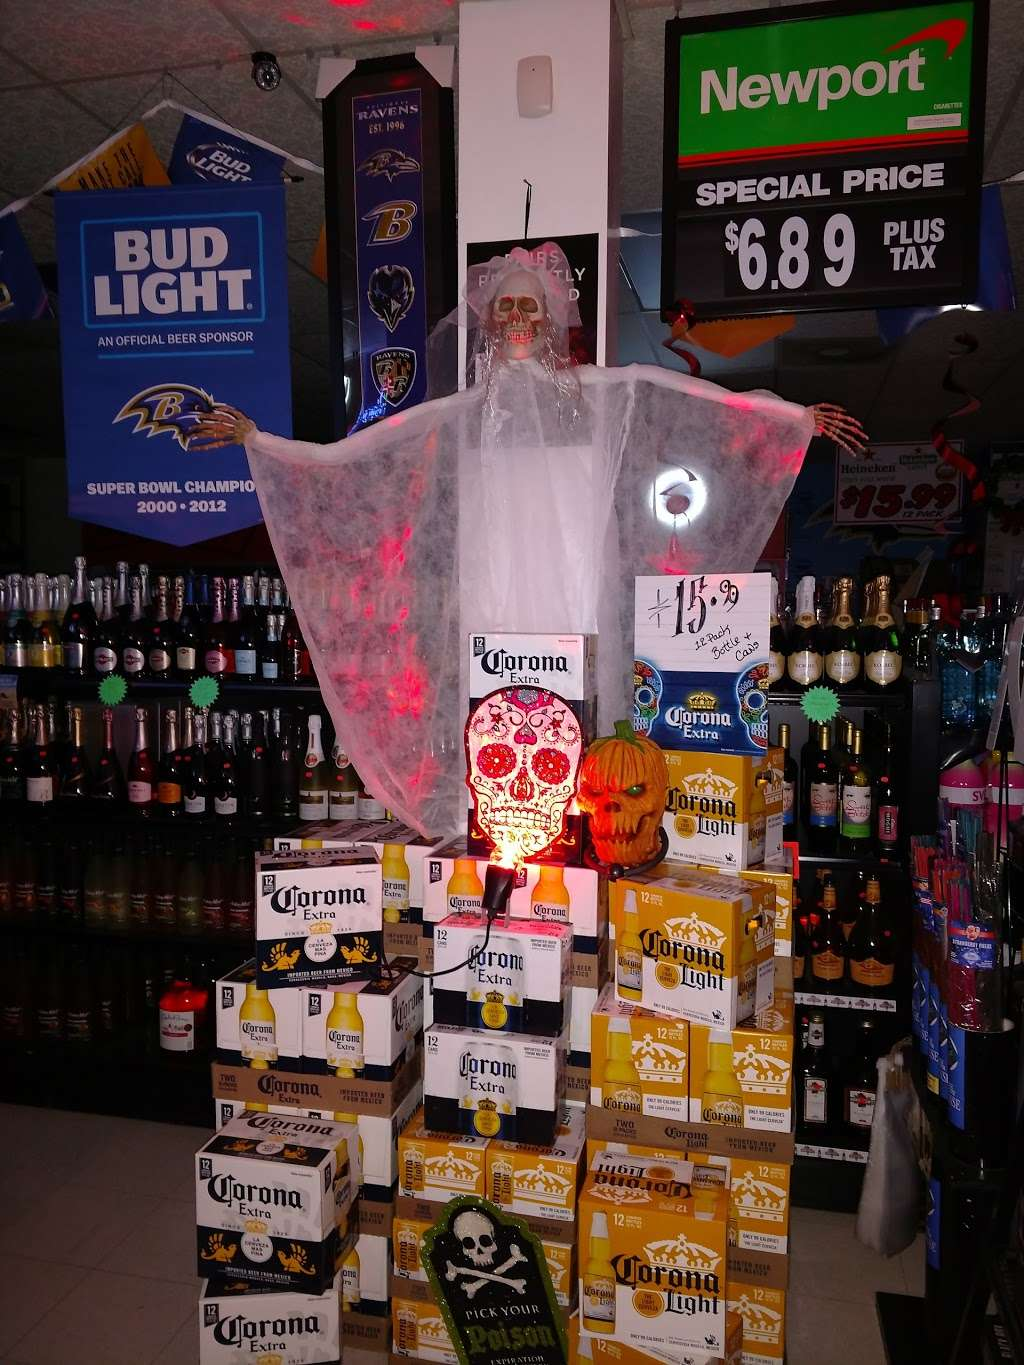 Gussies Liquor - store  | Photo 1 of 3 | Address: 1700 Old Eastern Ave, Essex, MD 21221, USA | Phone: (410) 687-1148